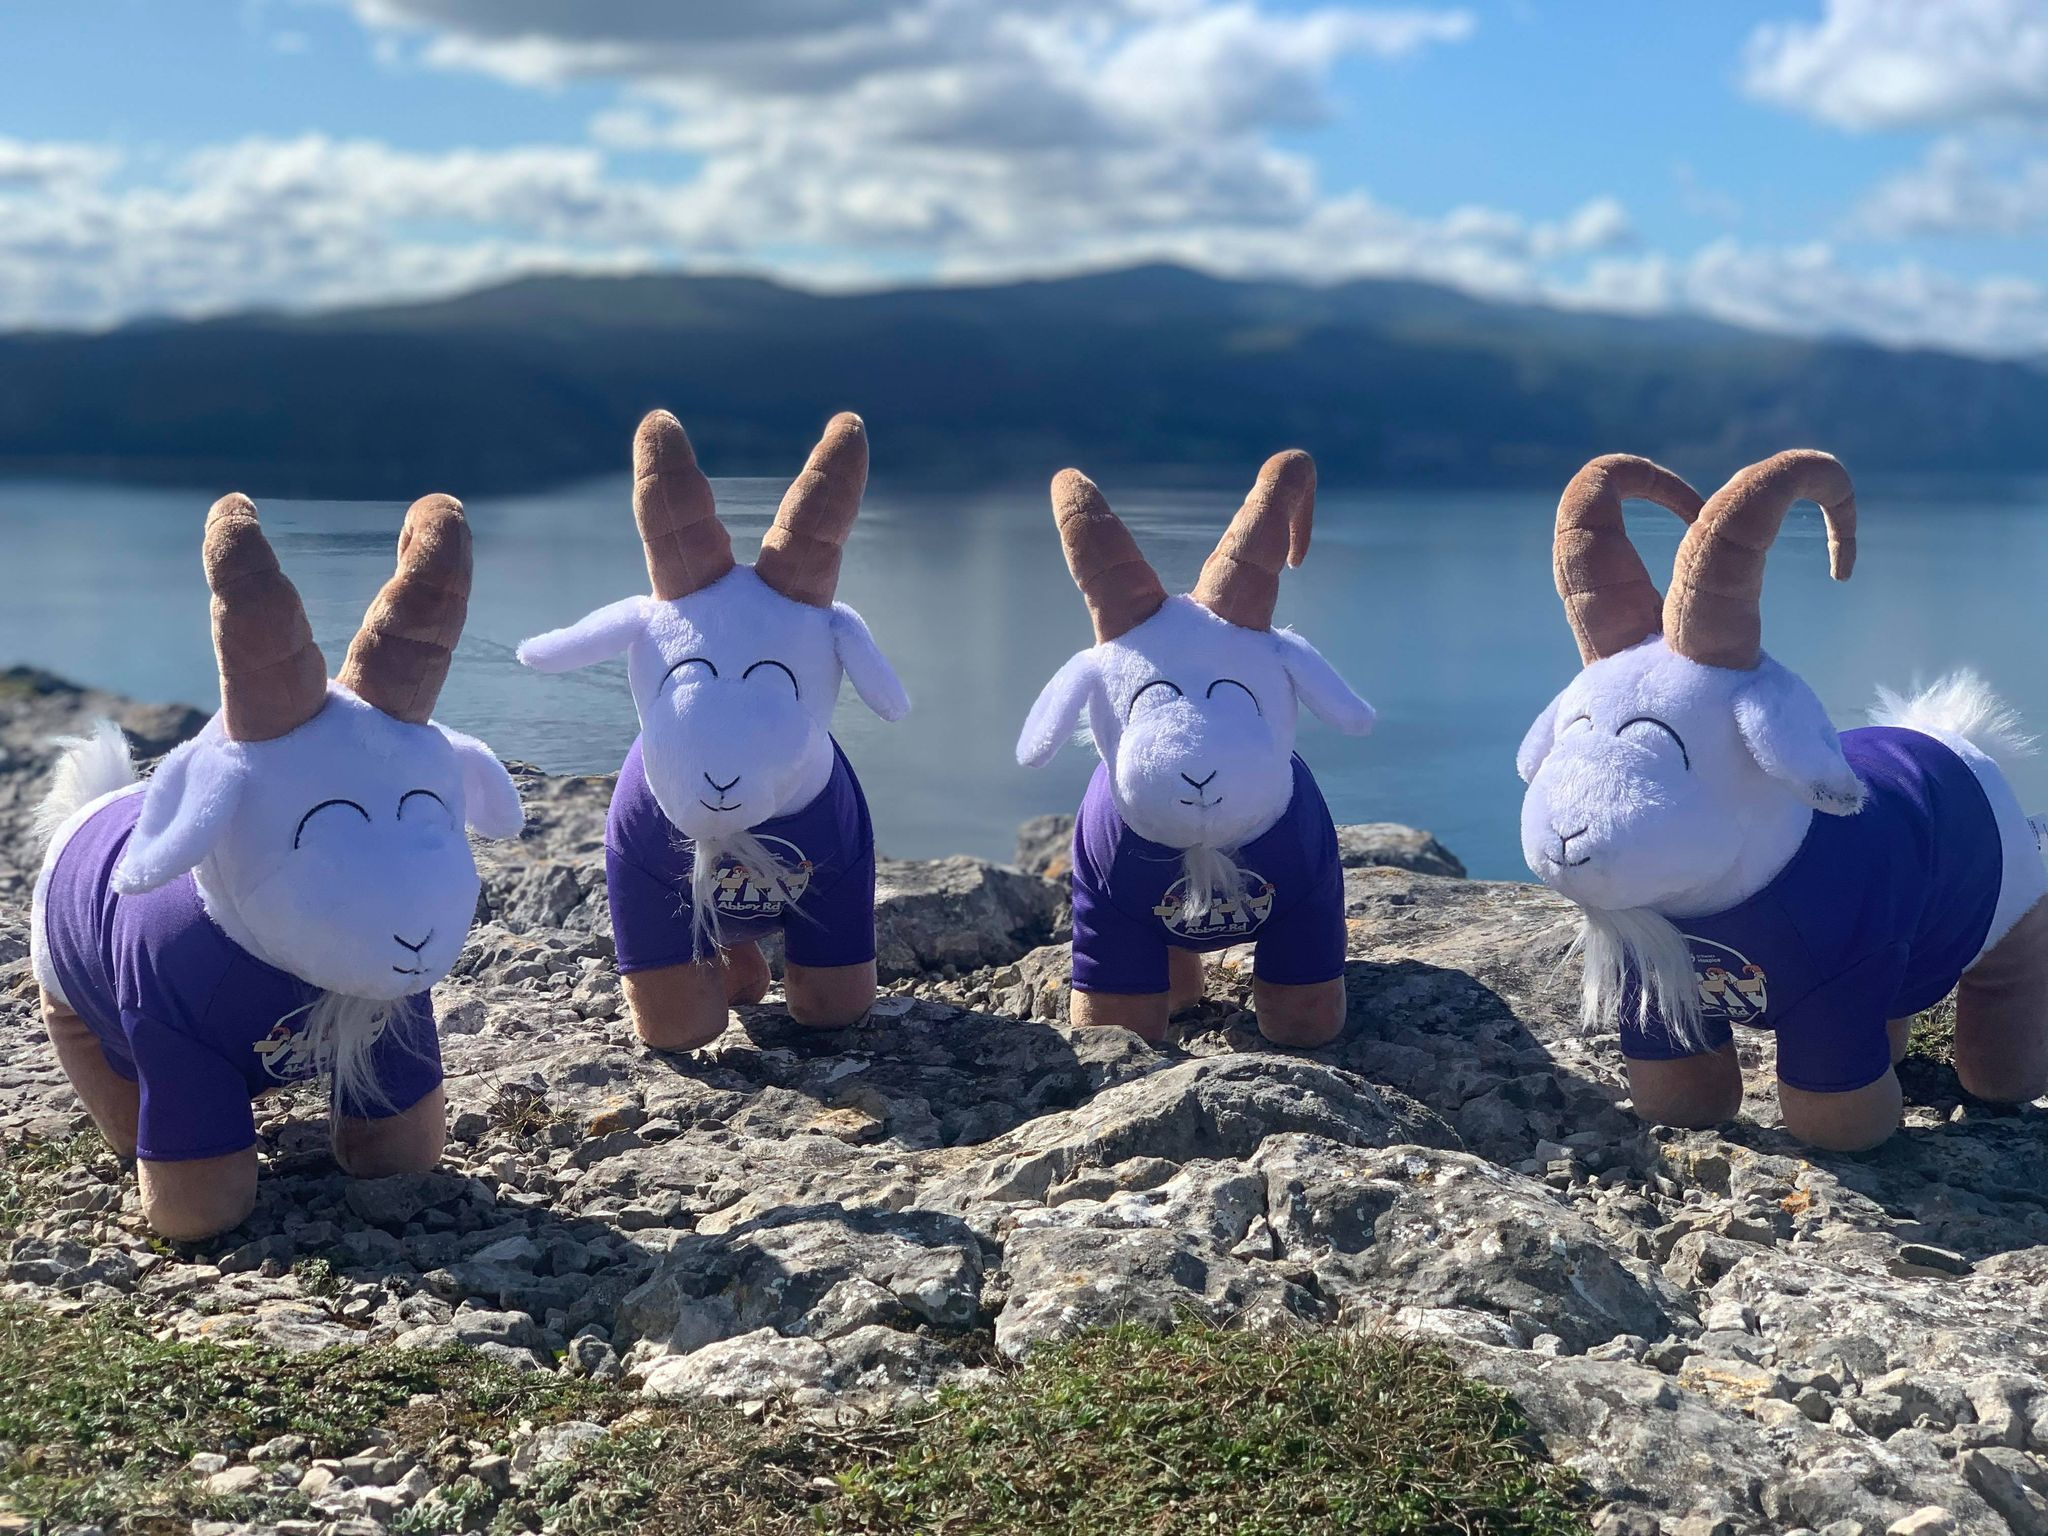 'Mostyn' the Great Orme Goat soft toy arrives in town!